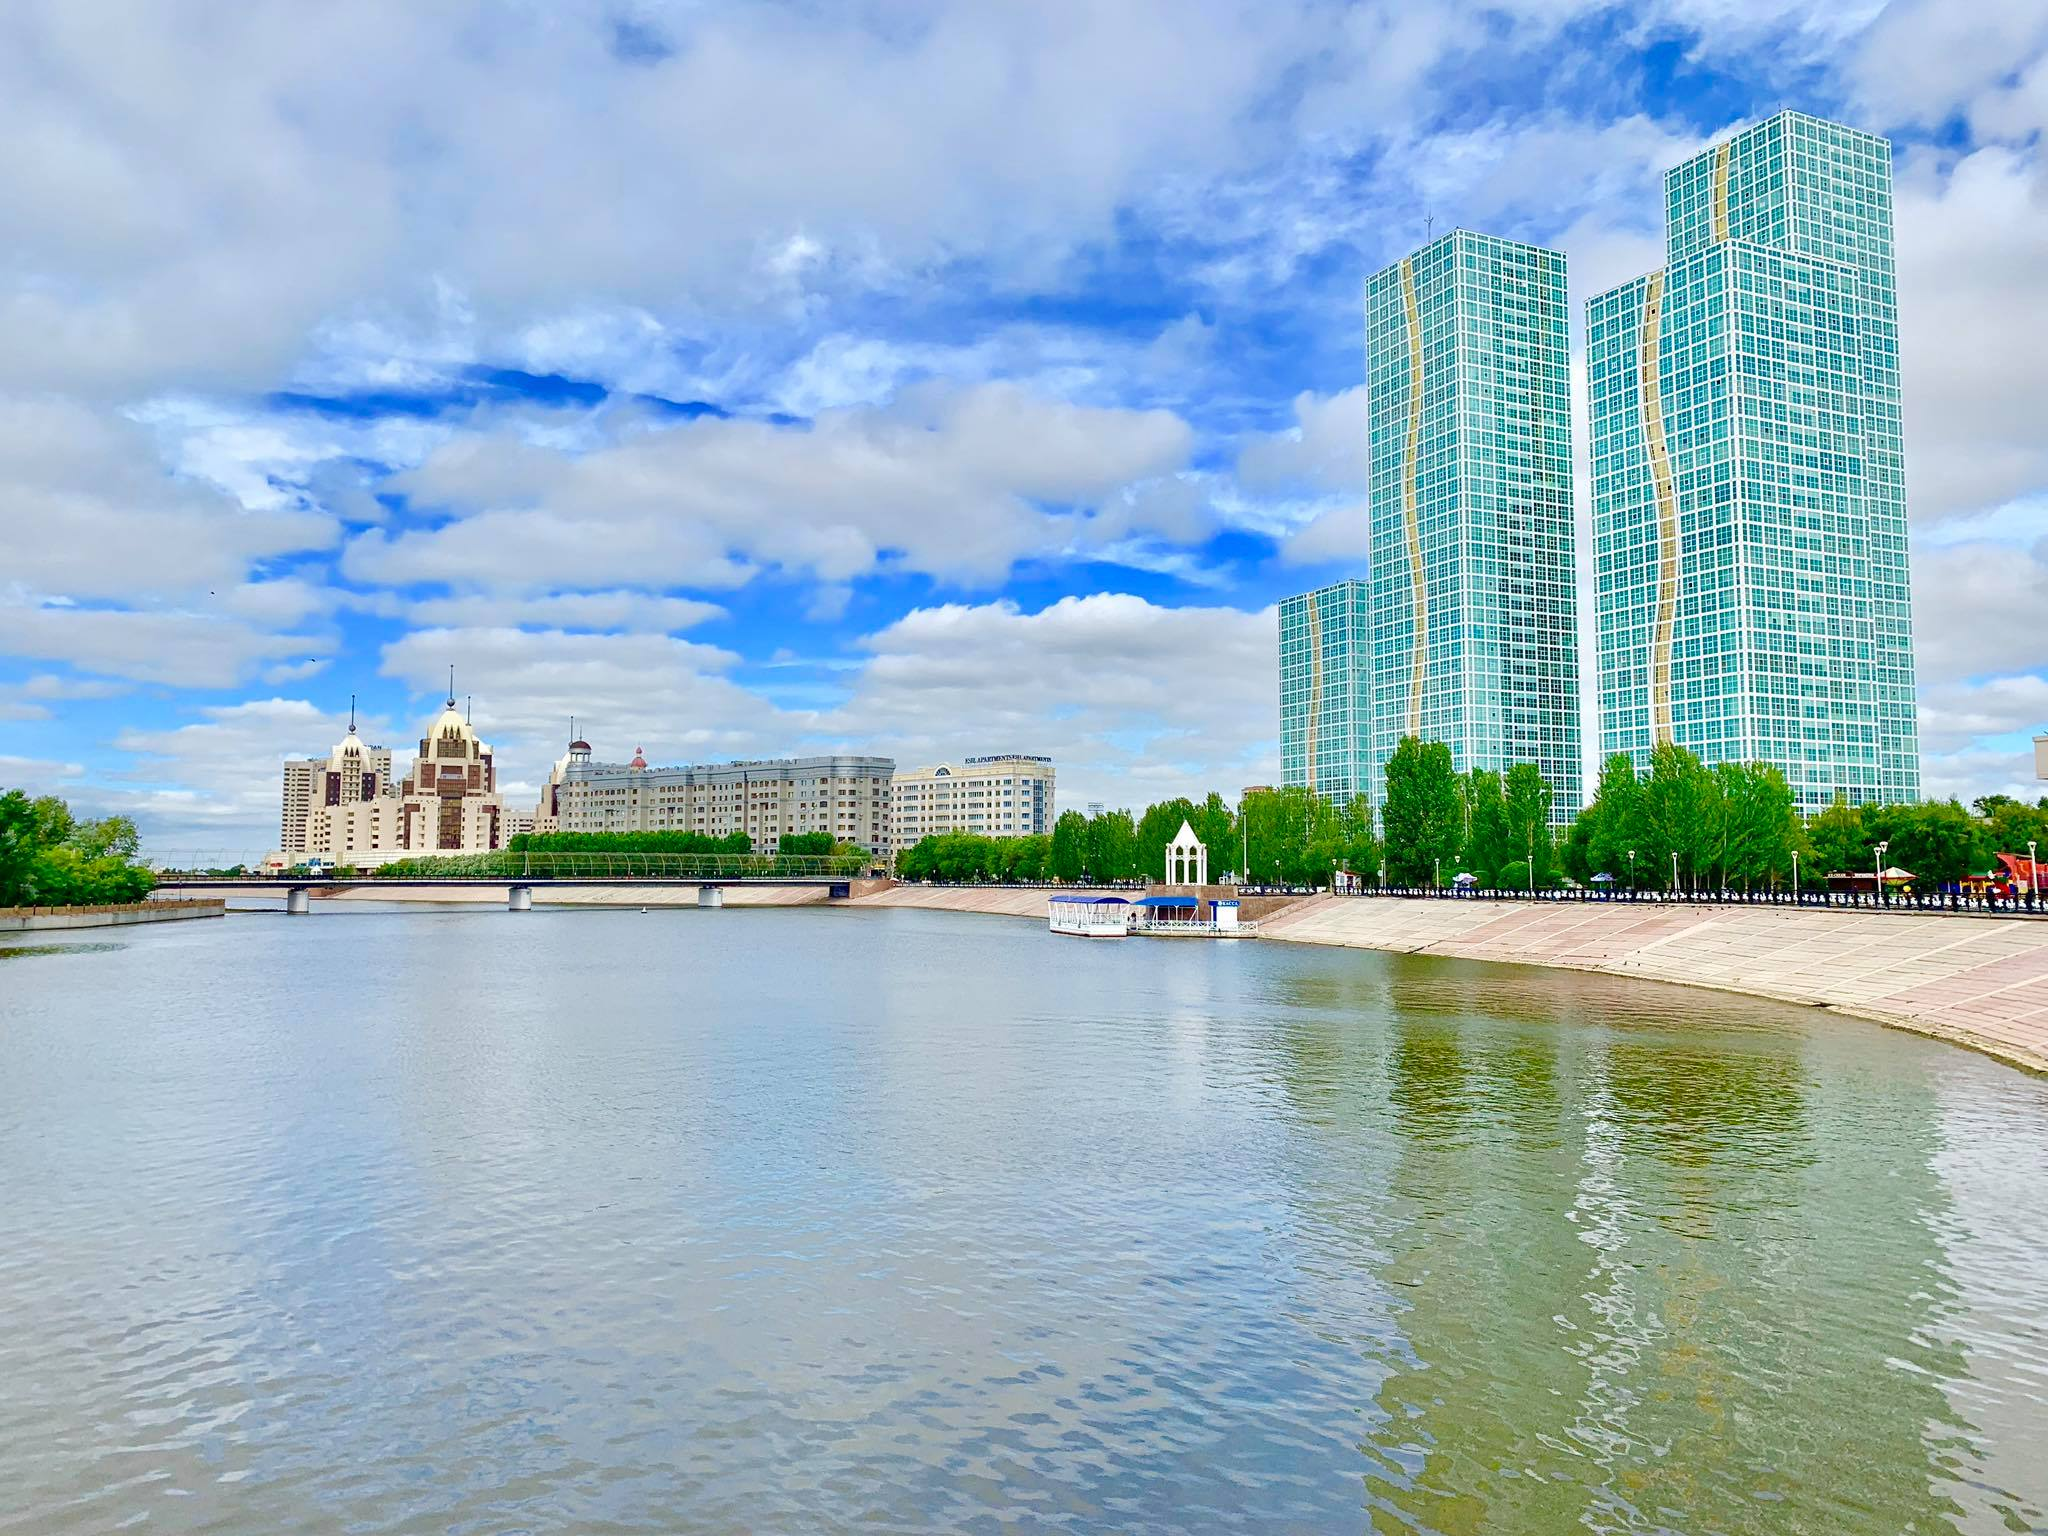 Kach Solo Travels in 2019 Nursultan  Astana - the City of the Future15.jpg